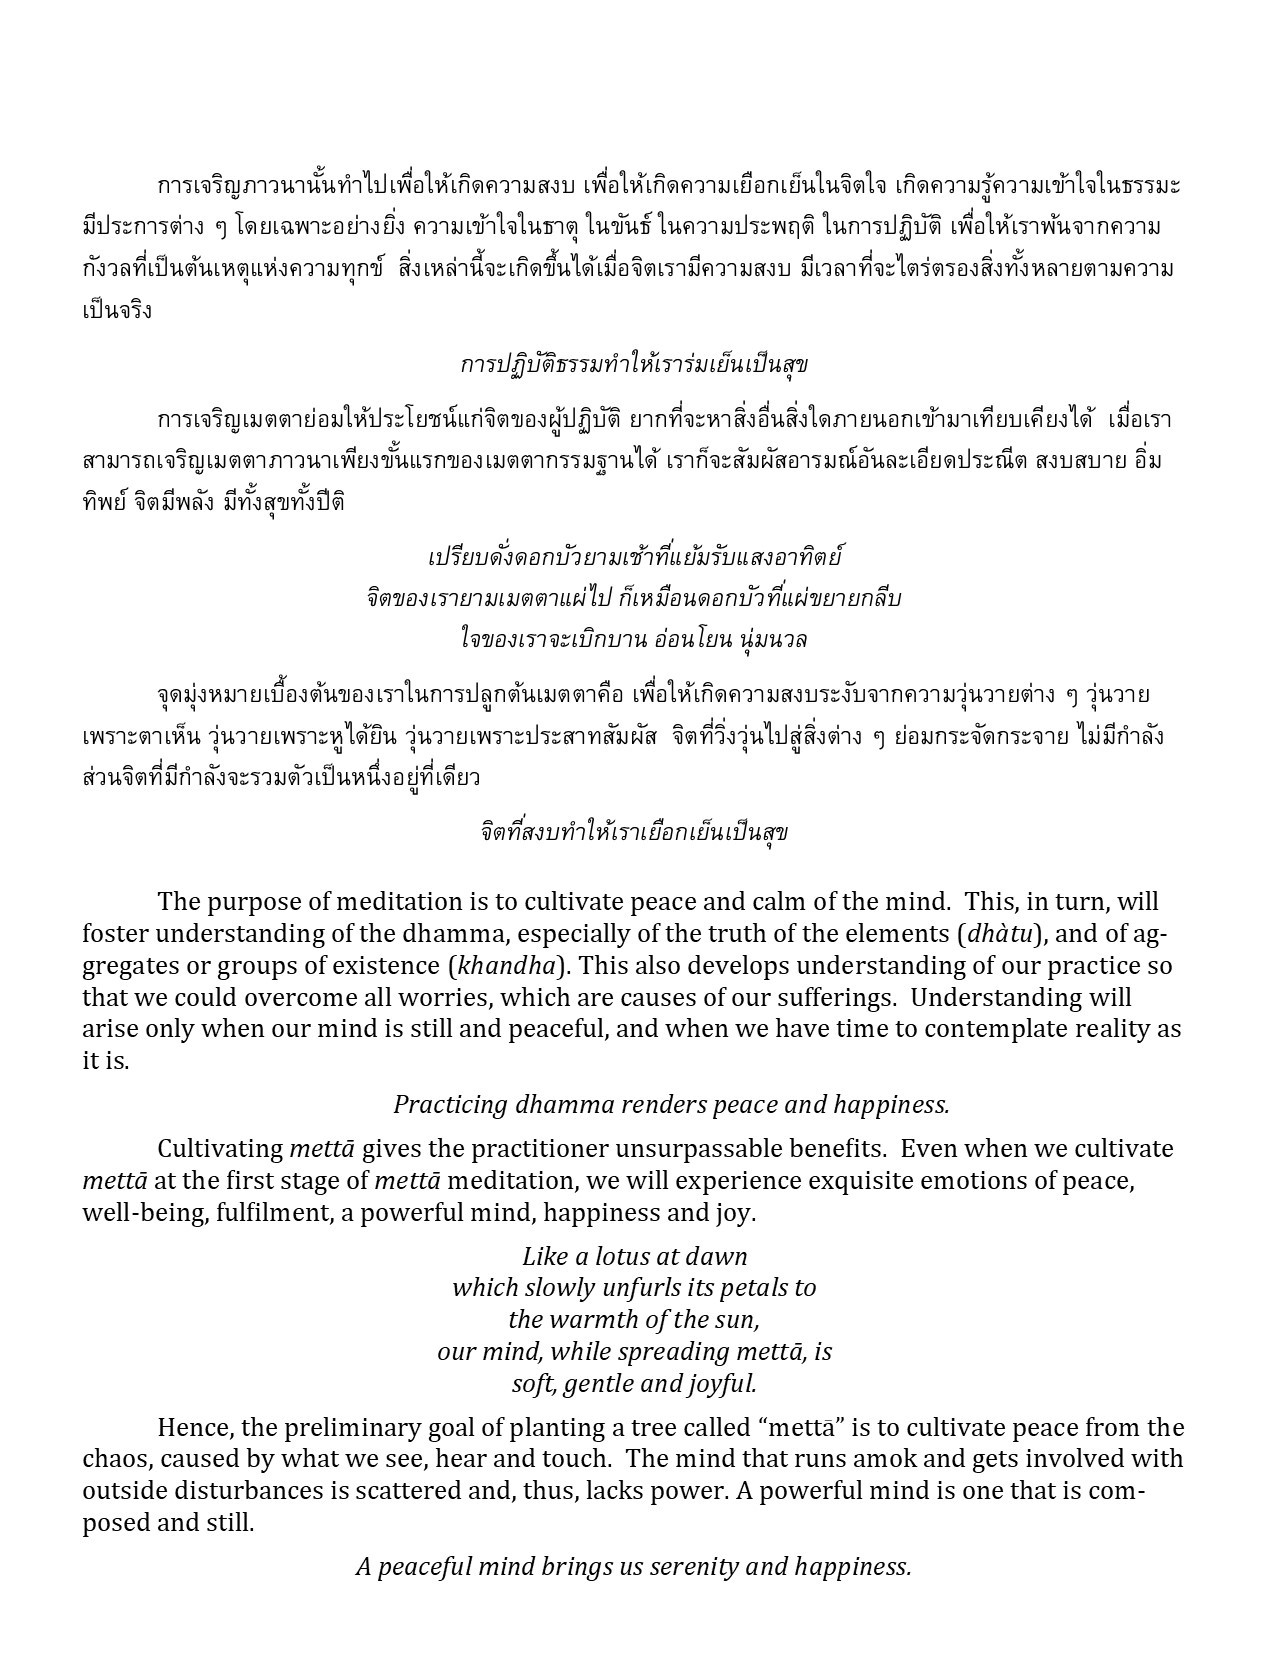 Dhamma Translation